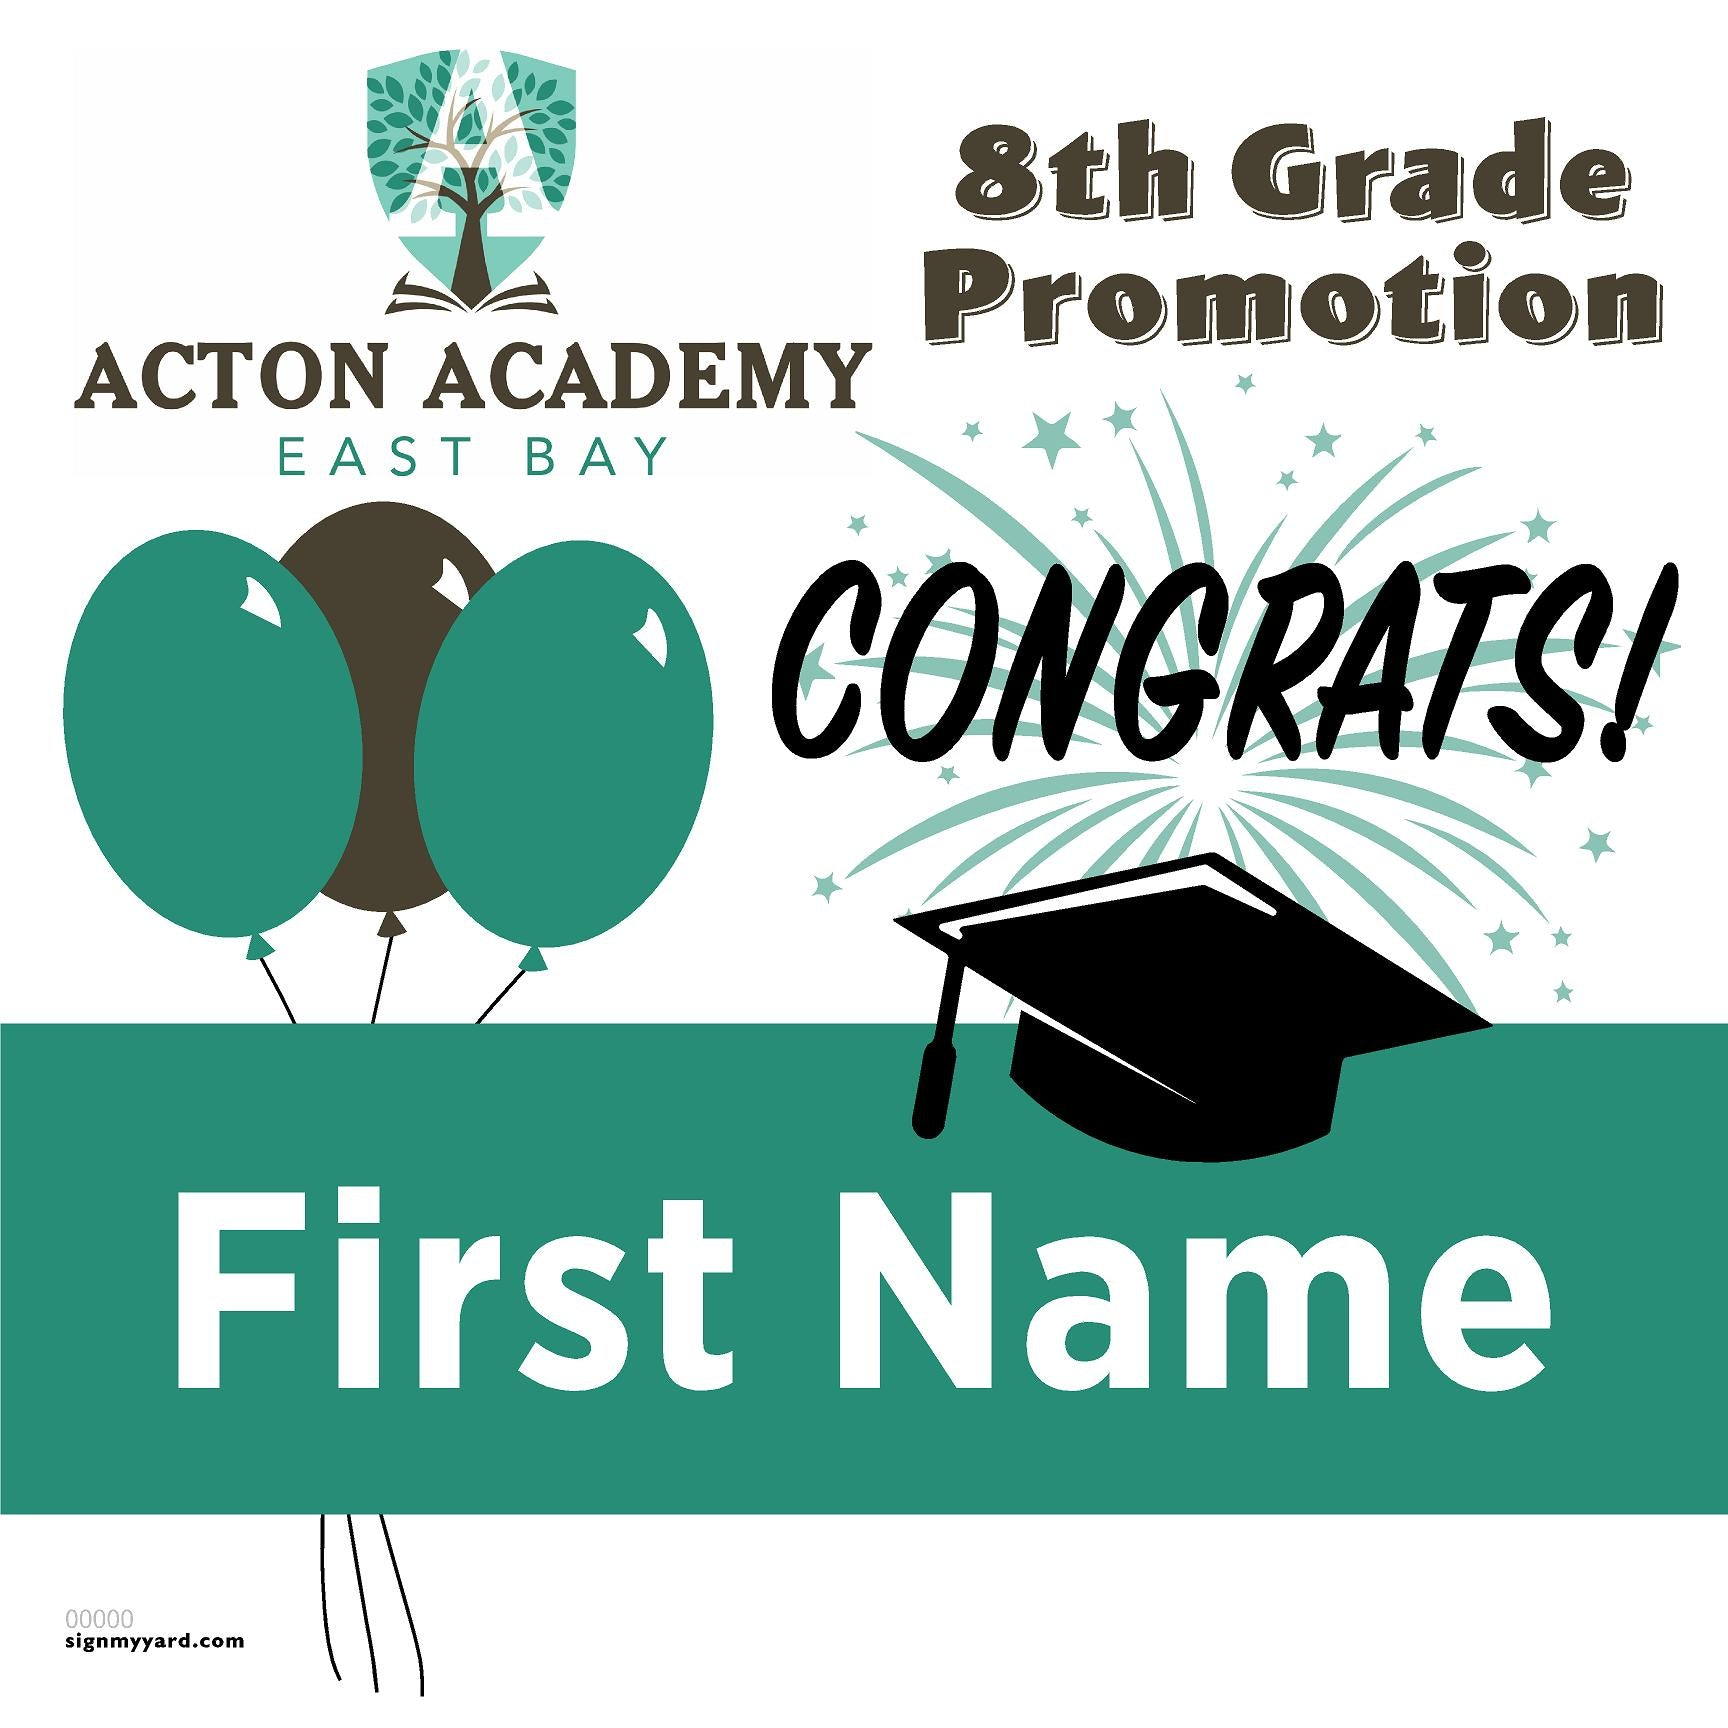 Acton Academy East Bay 8th Grade Promotion 24x24 #shineon2024 Yard Sign (Option A)